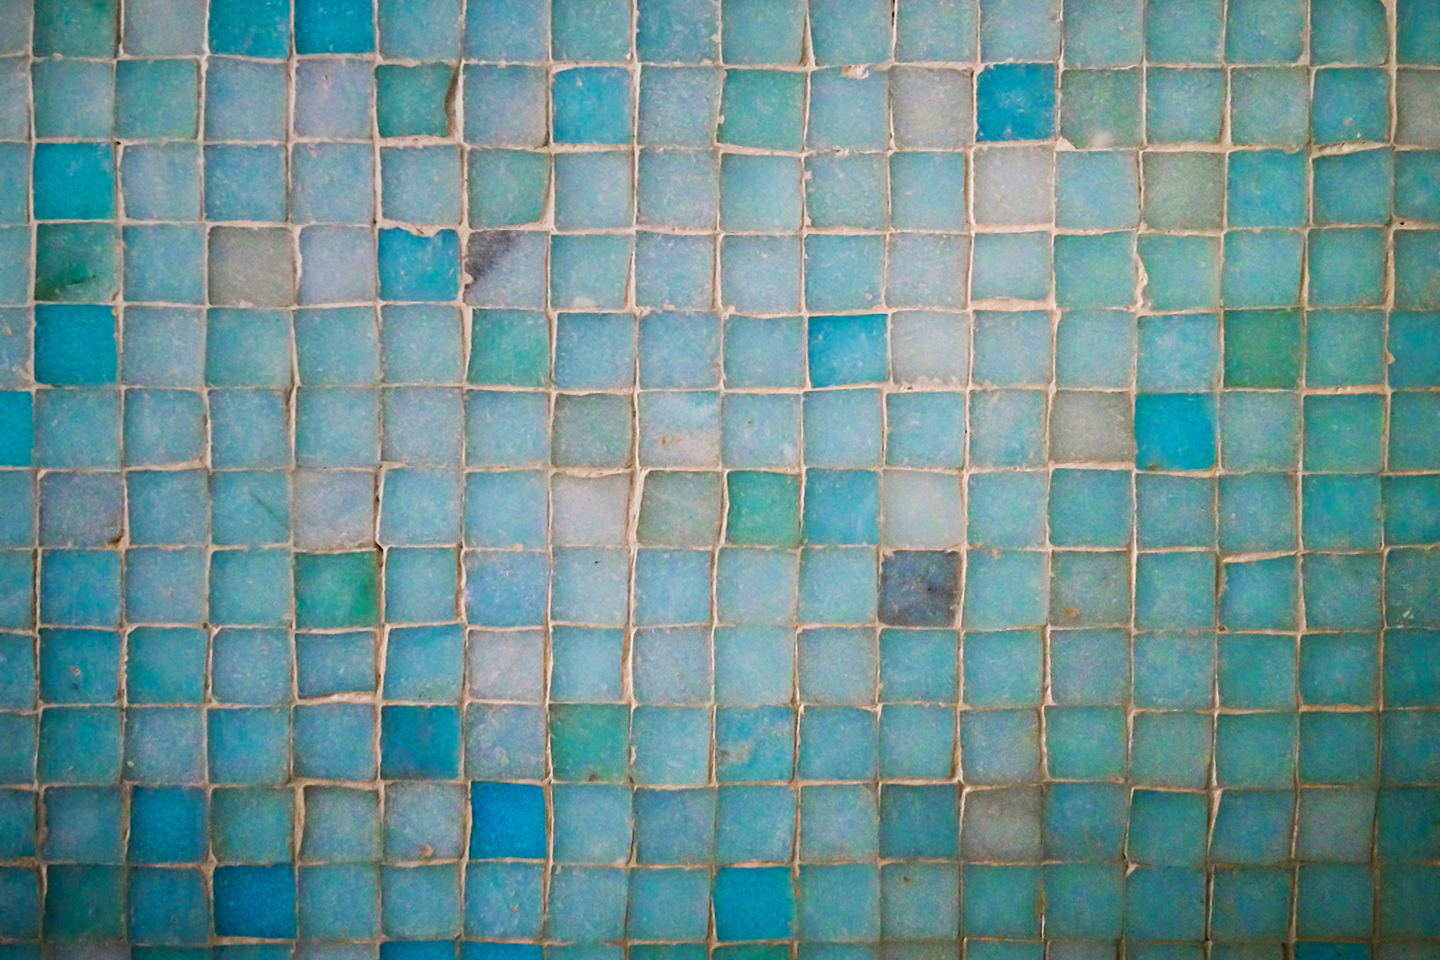 small-squared-tiles.jpg